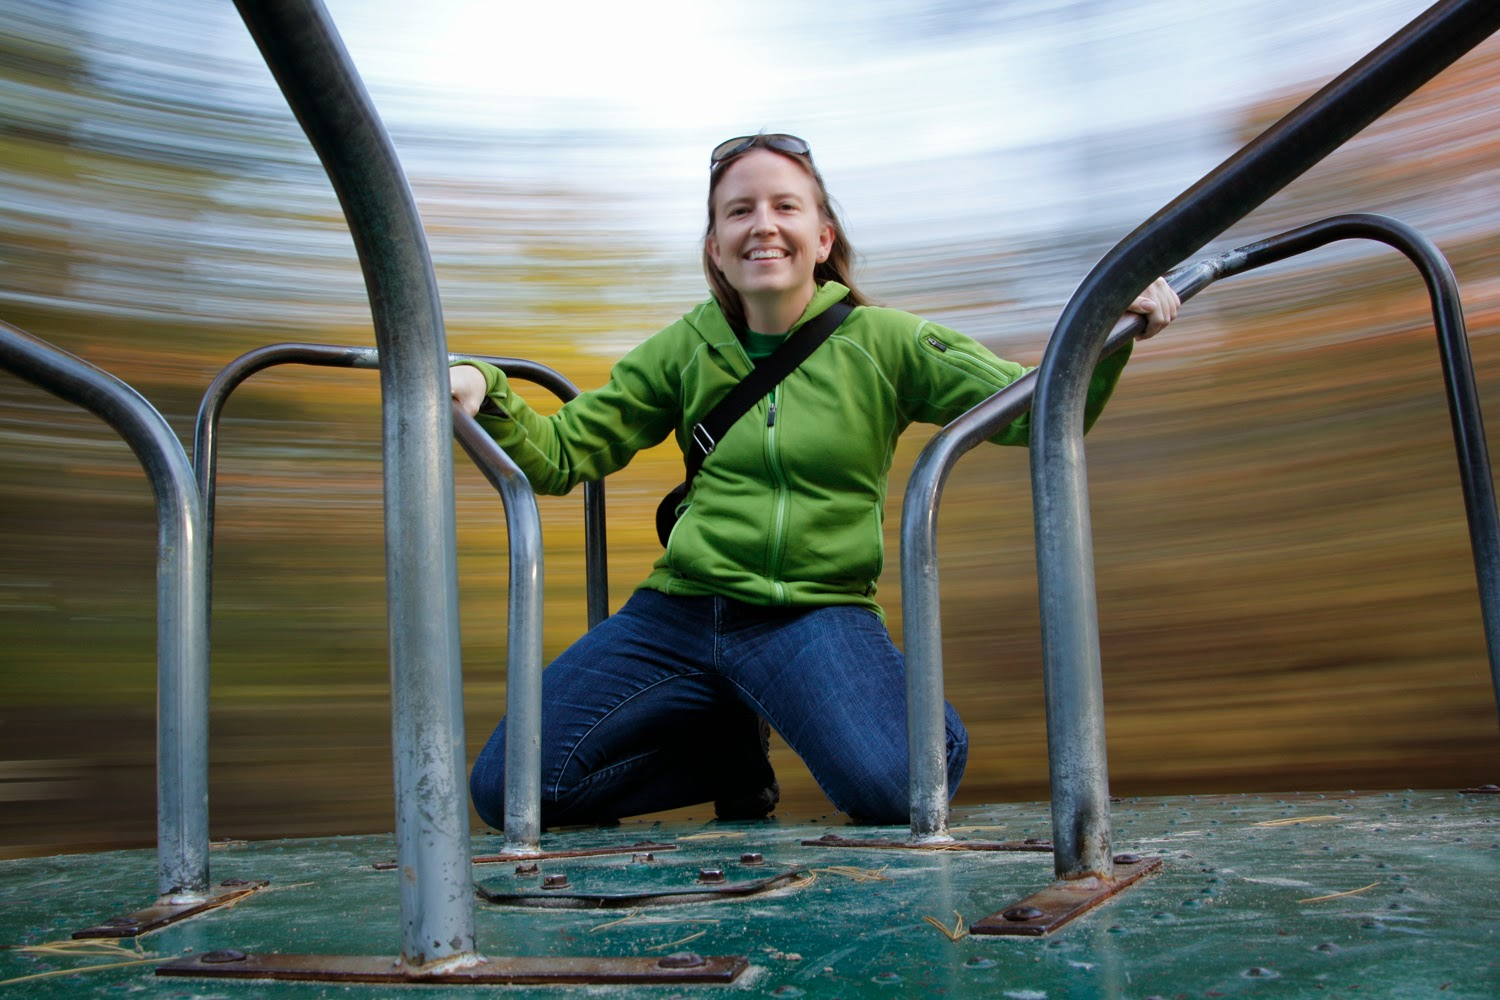 Motion Blur Merry-Go-Round Selfie Taken with GorillaPod | Boost Your Photography